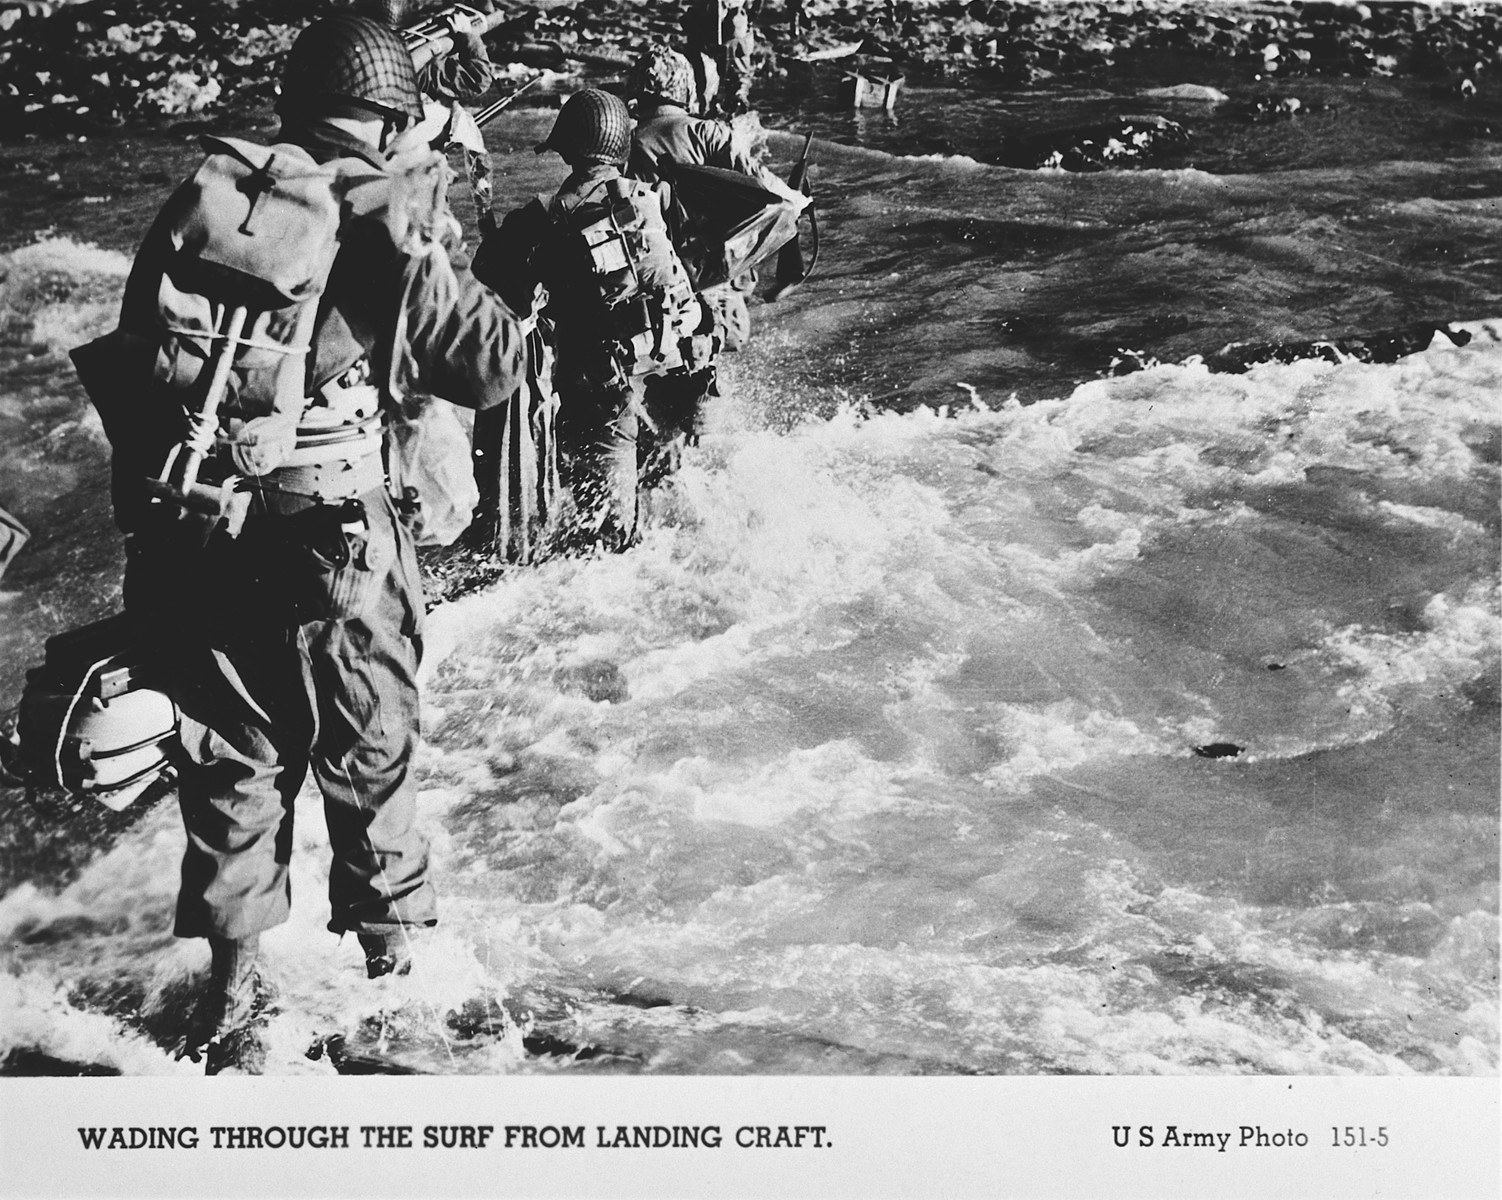 American troops wade through the surf on their arrival at the Normandy beaches.